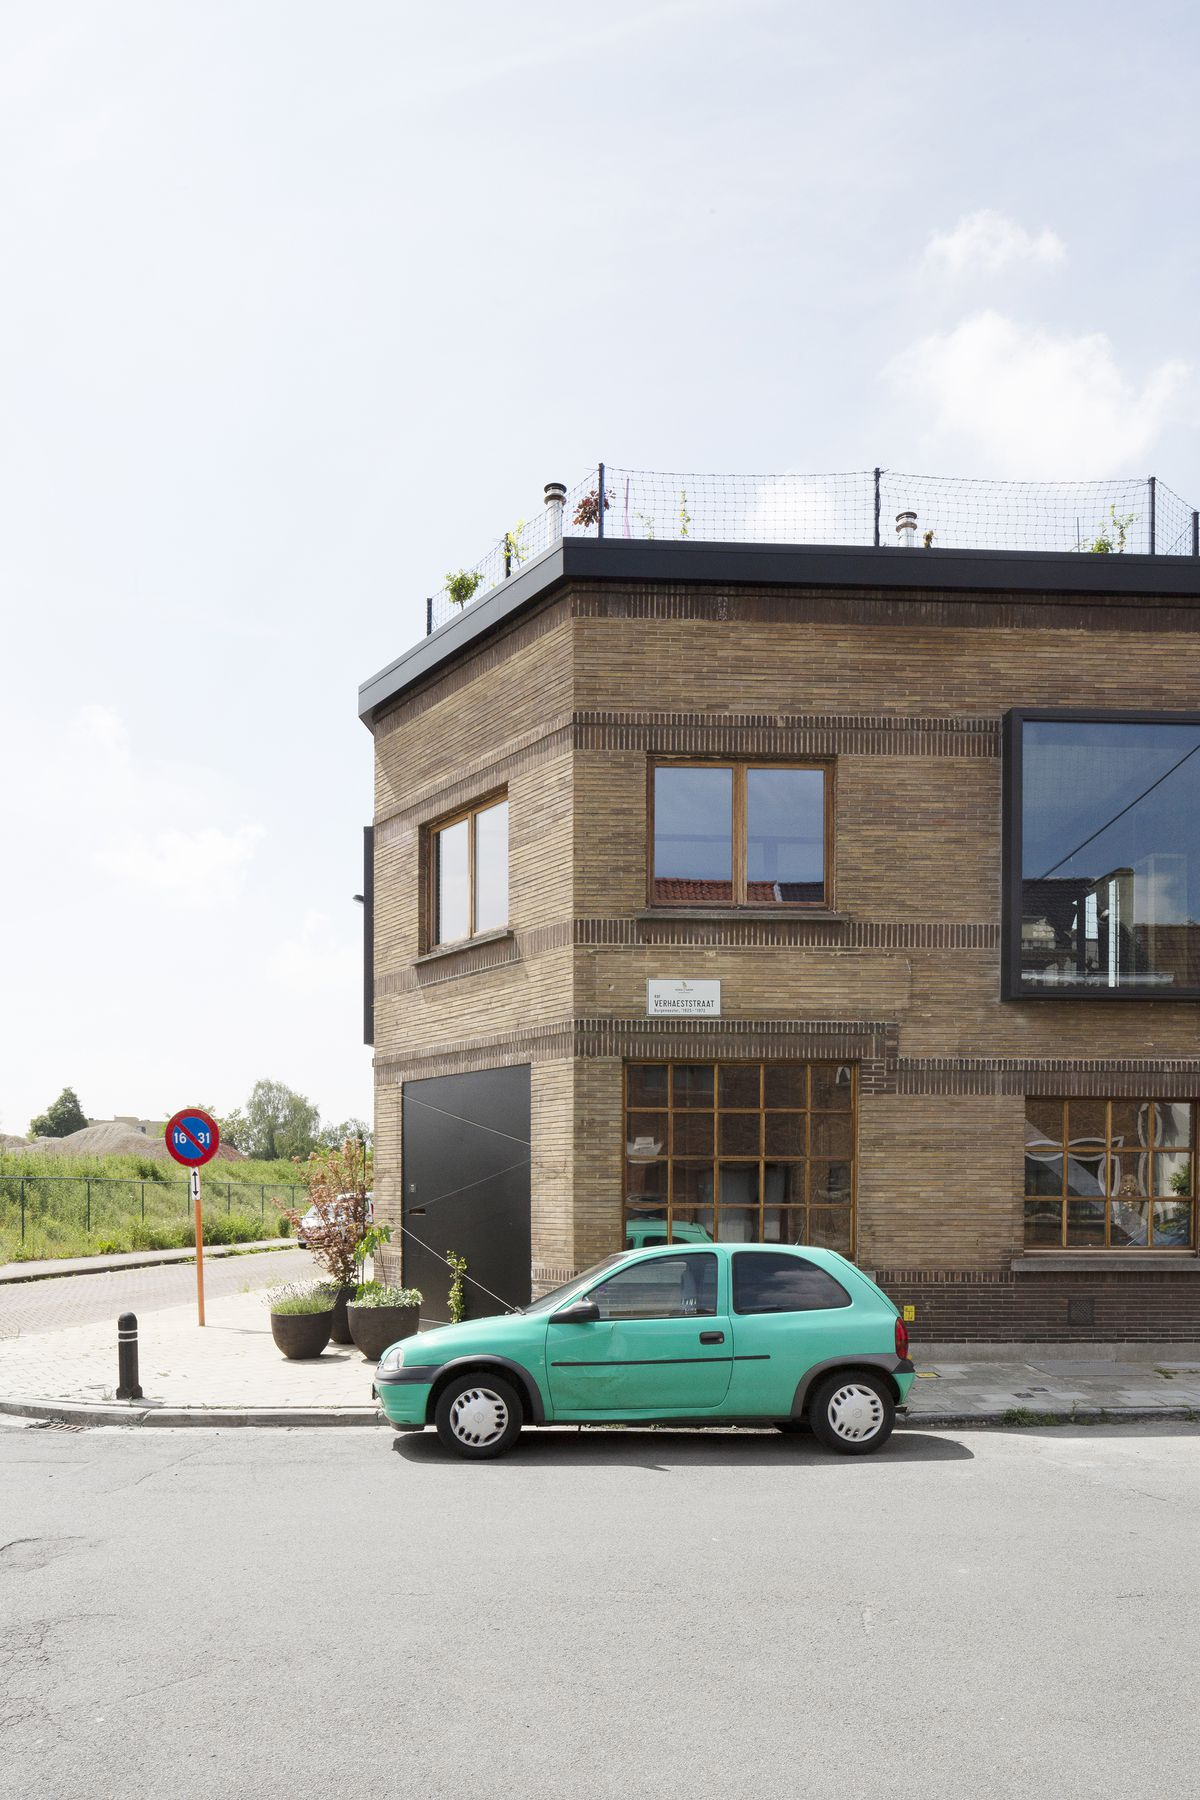 The exterior of a house. The facade is brown brick and there is a bright green car sitting outside of the building. There are multiple windows.